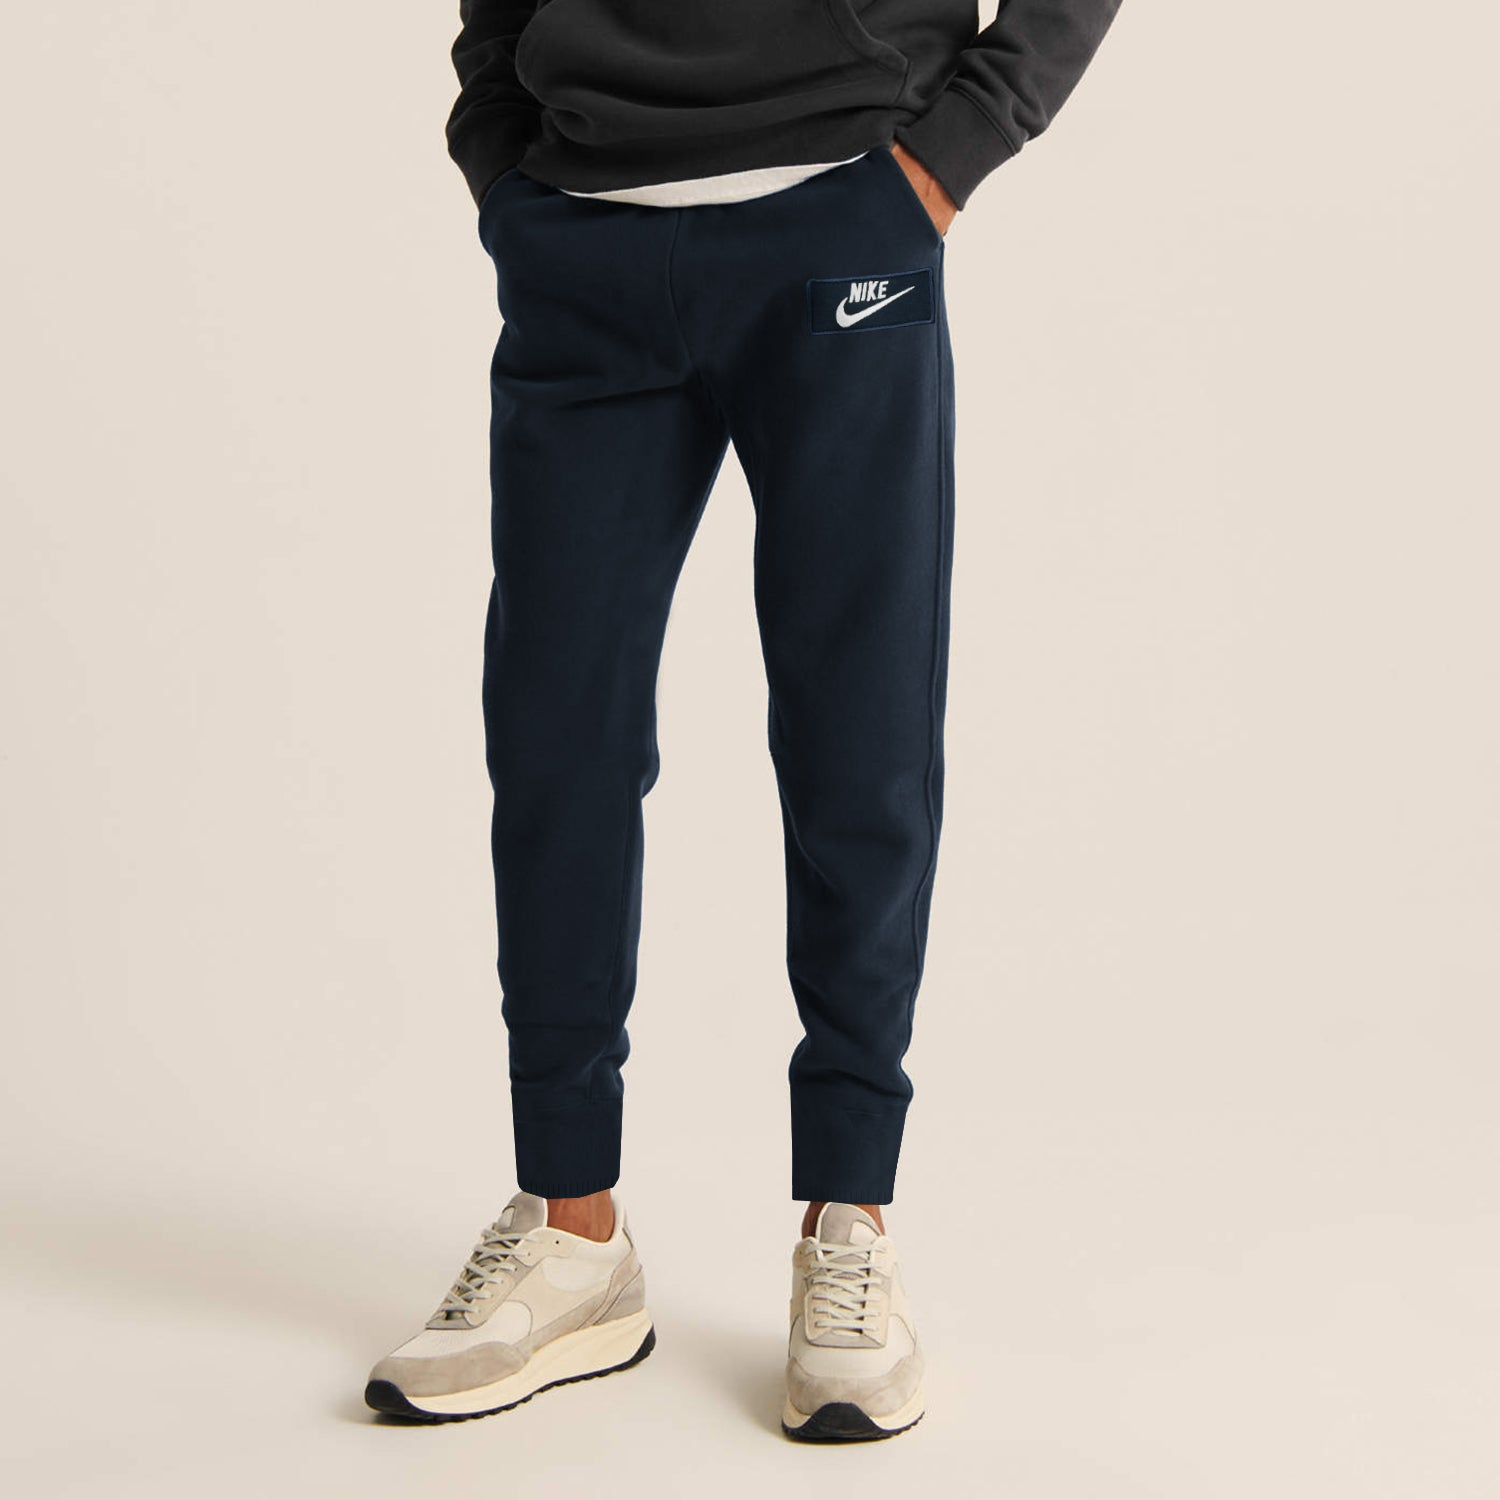 NK Fleece Gathering Fit Pant Style Jogging Trouser For Men-Dark Navy with White Embroidery-BE12842